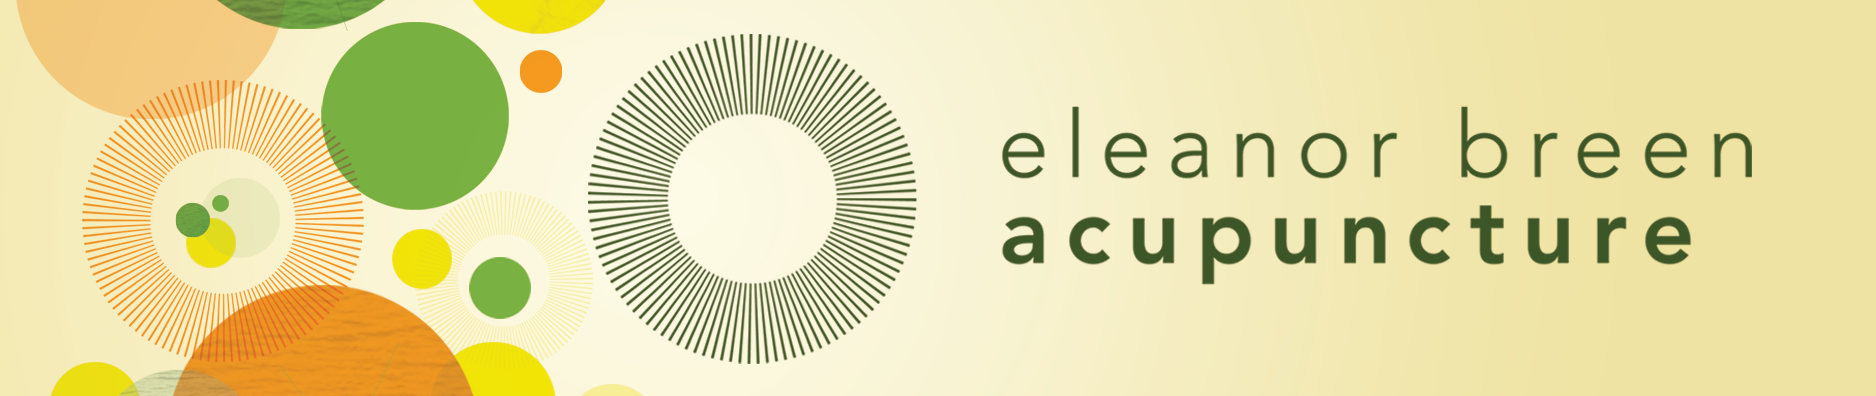 Eleanor Breen Acupuncture Bristol